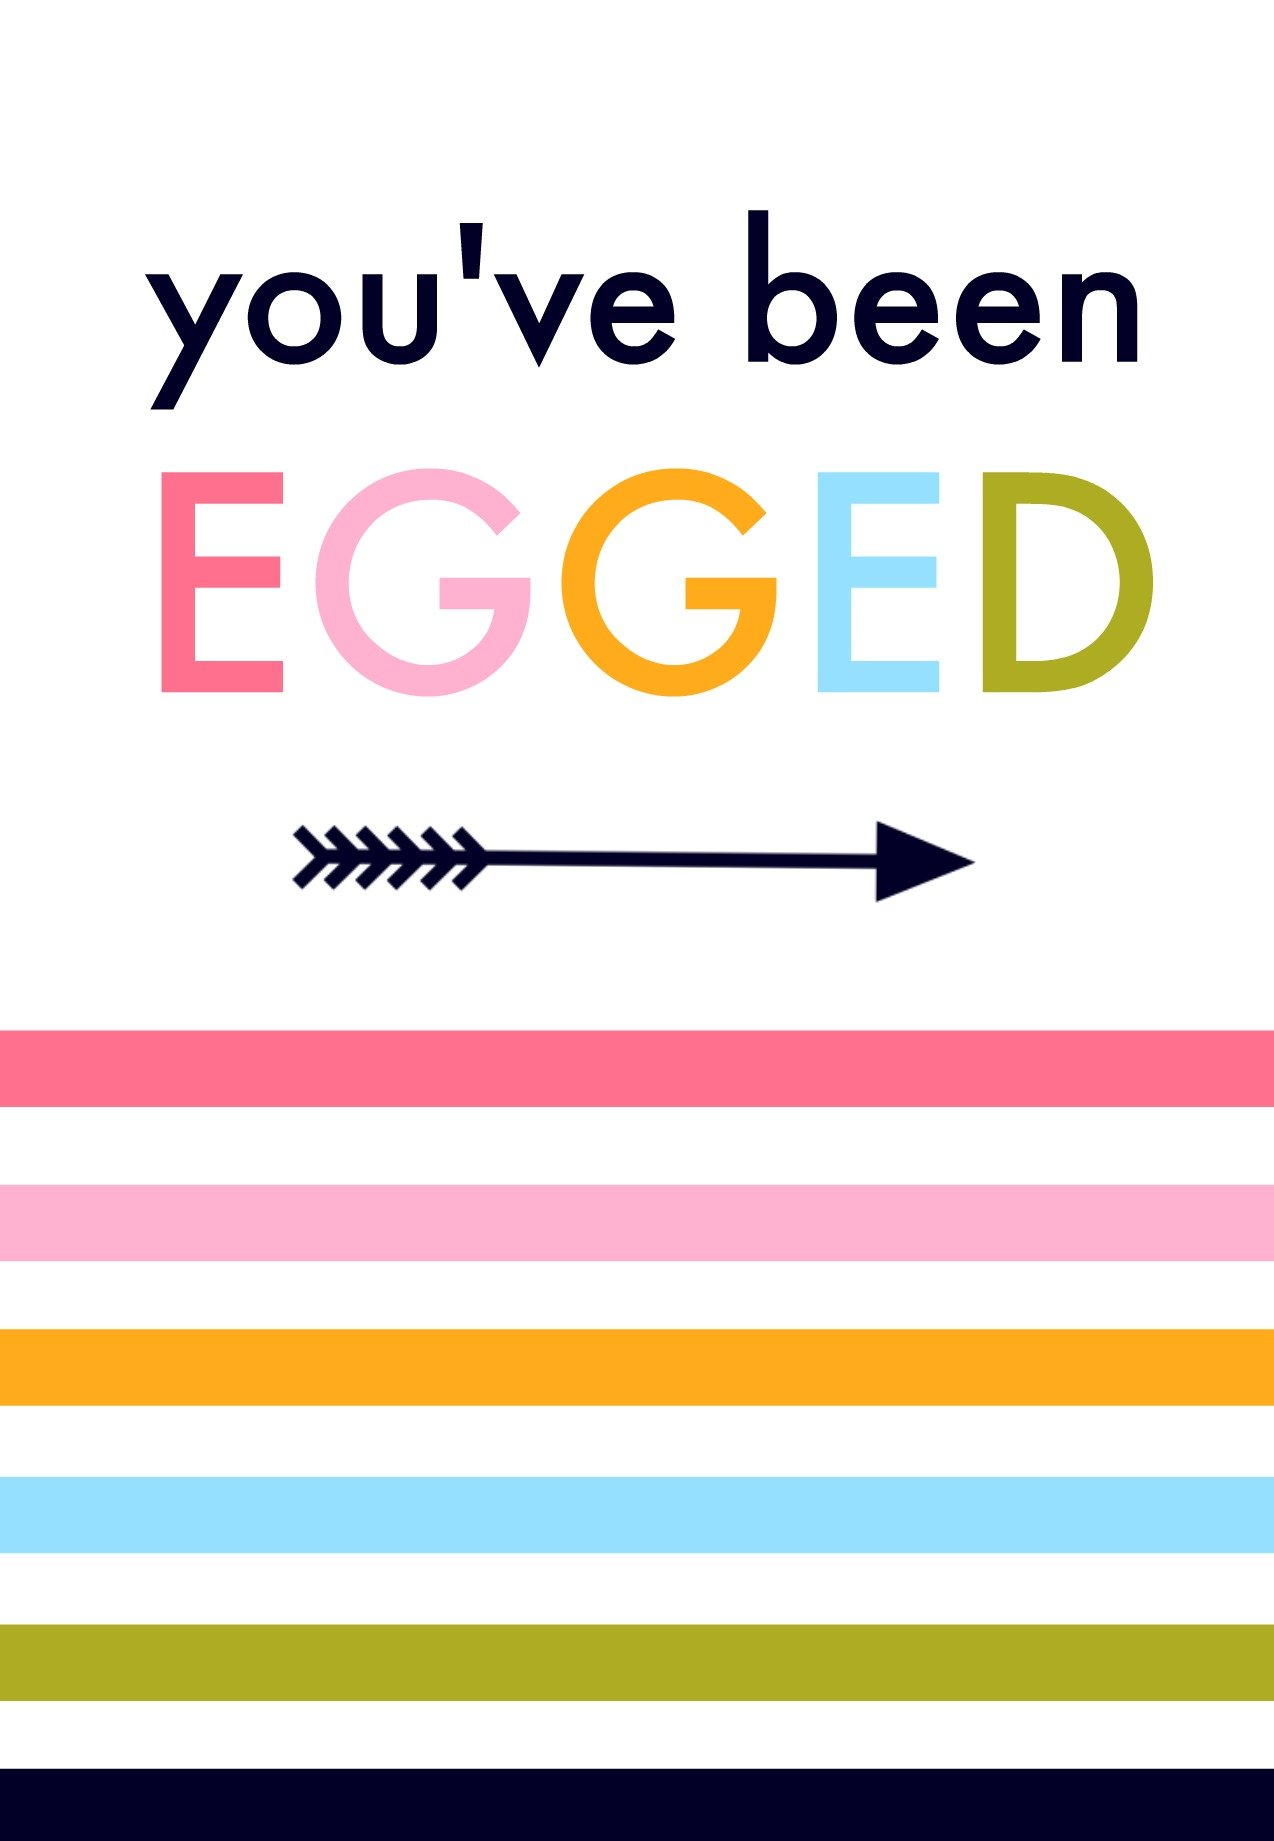 You've Been Egged | An Easter Service Activity | simplykierste.com